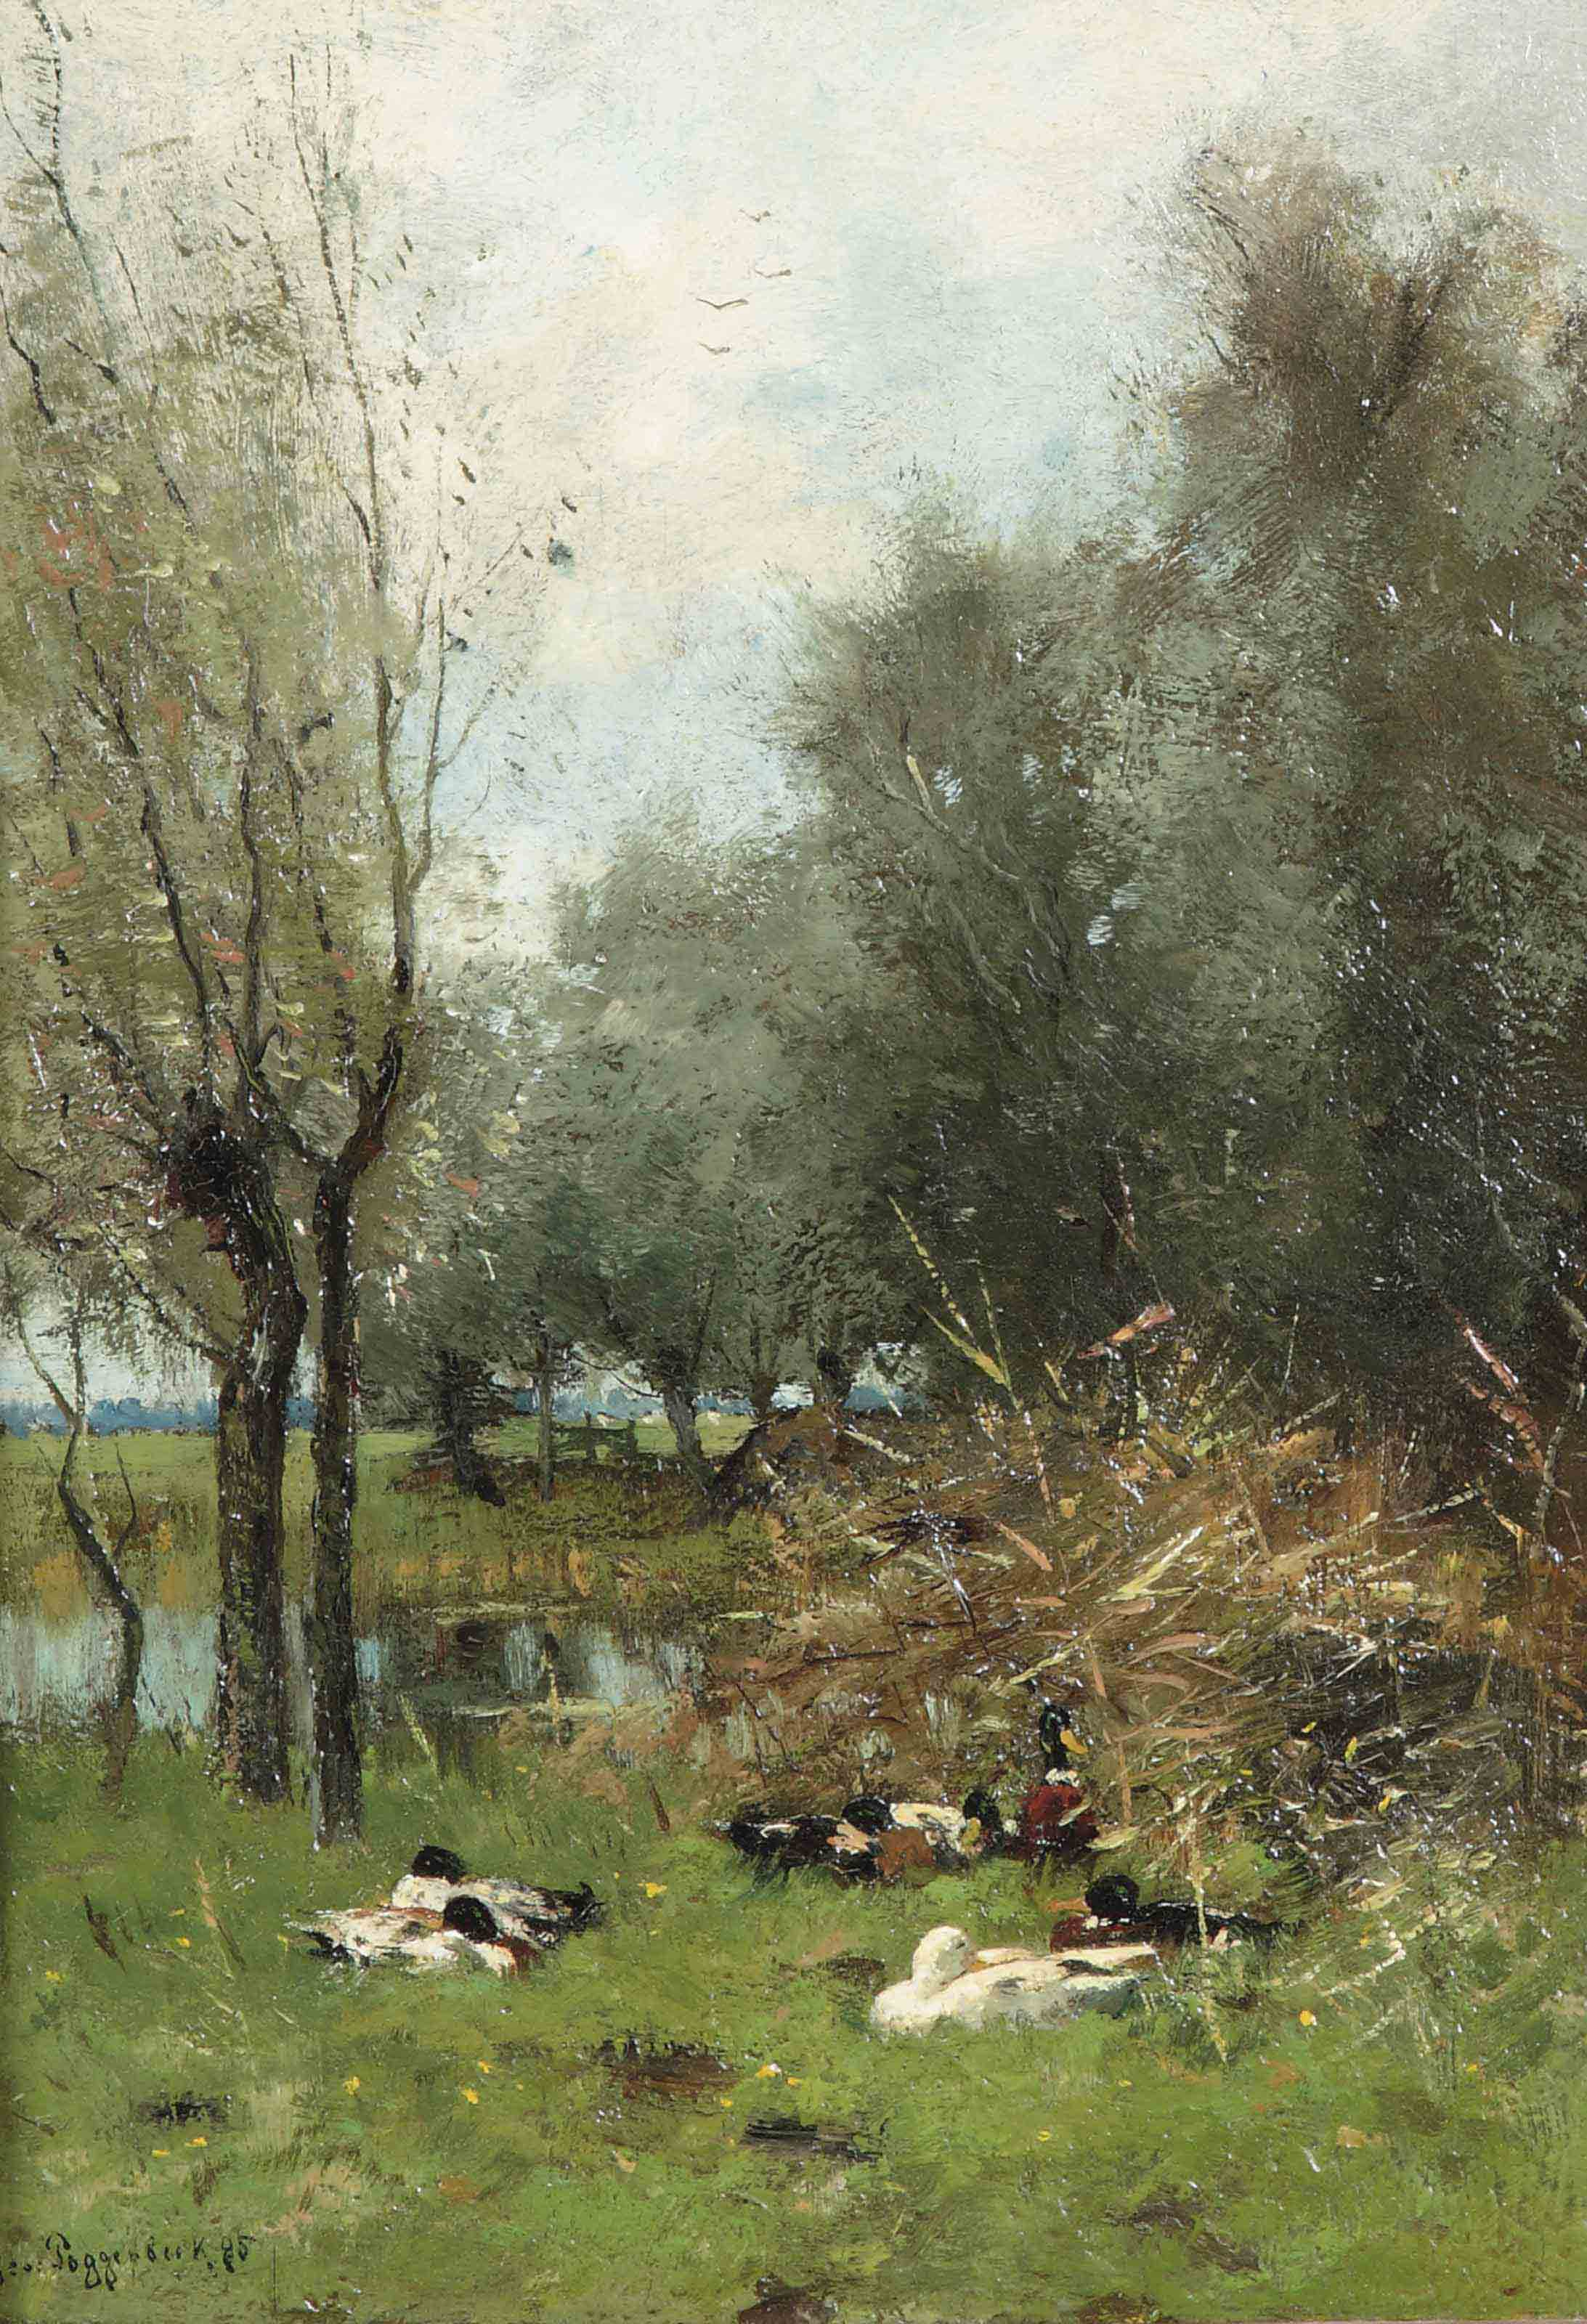 Ducks resting amongst the trees